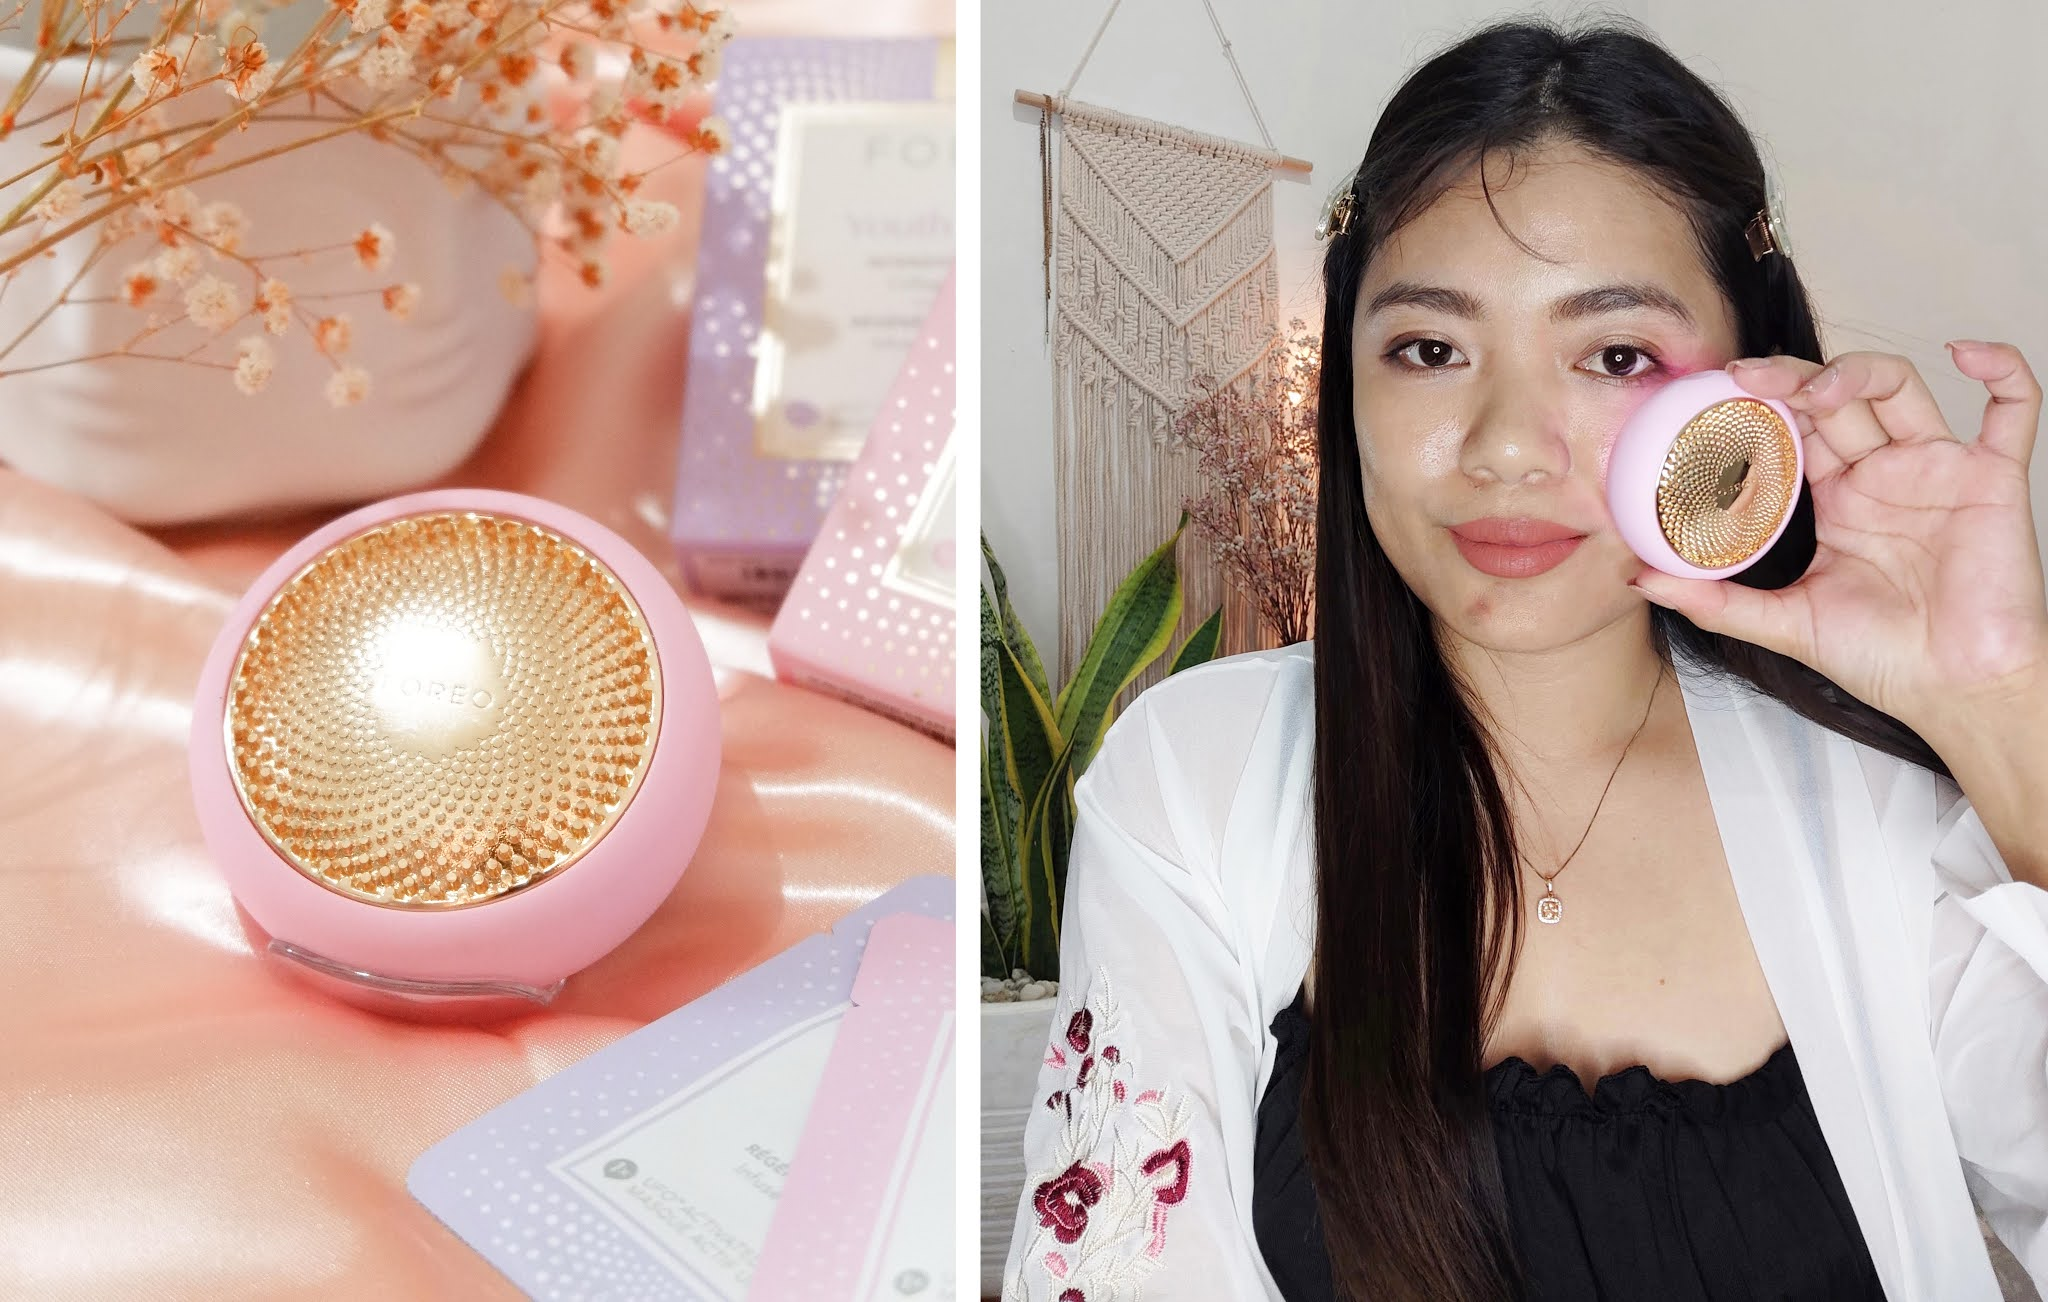 REVIEW OF UFO SMART MASK DEVICE BY FOREO SWEDEN